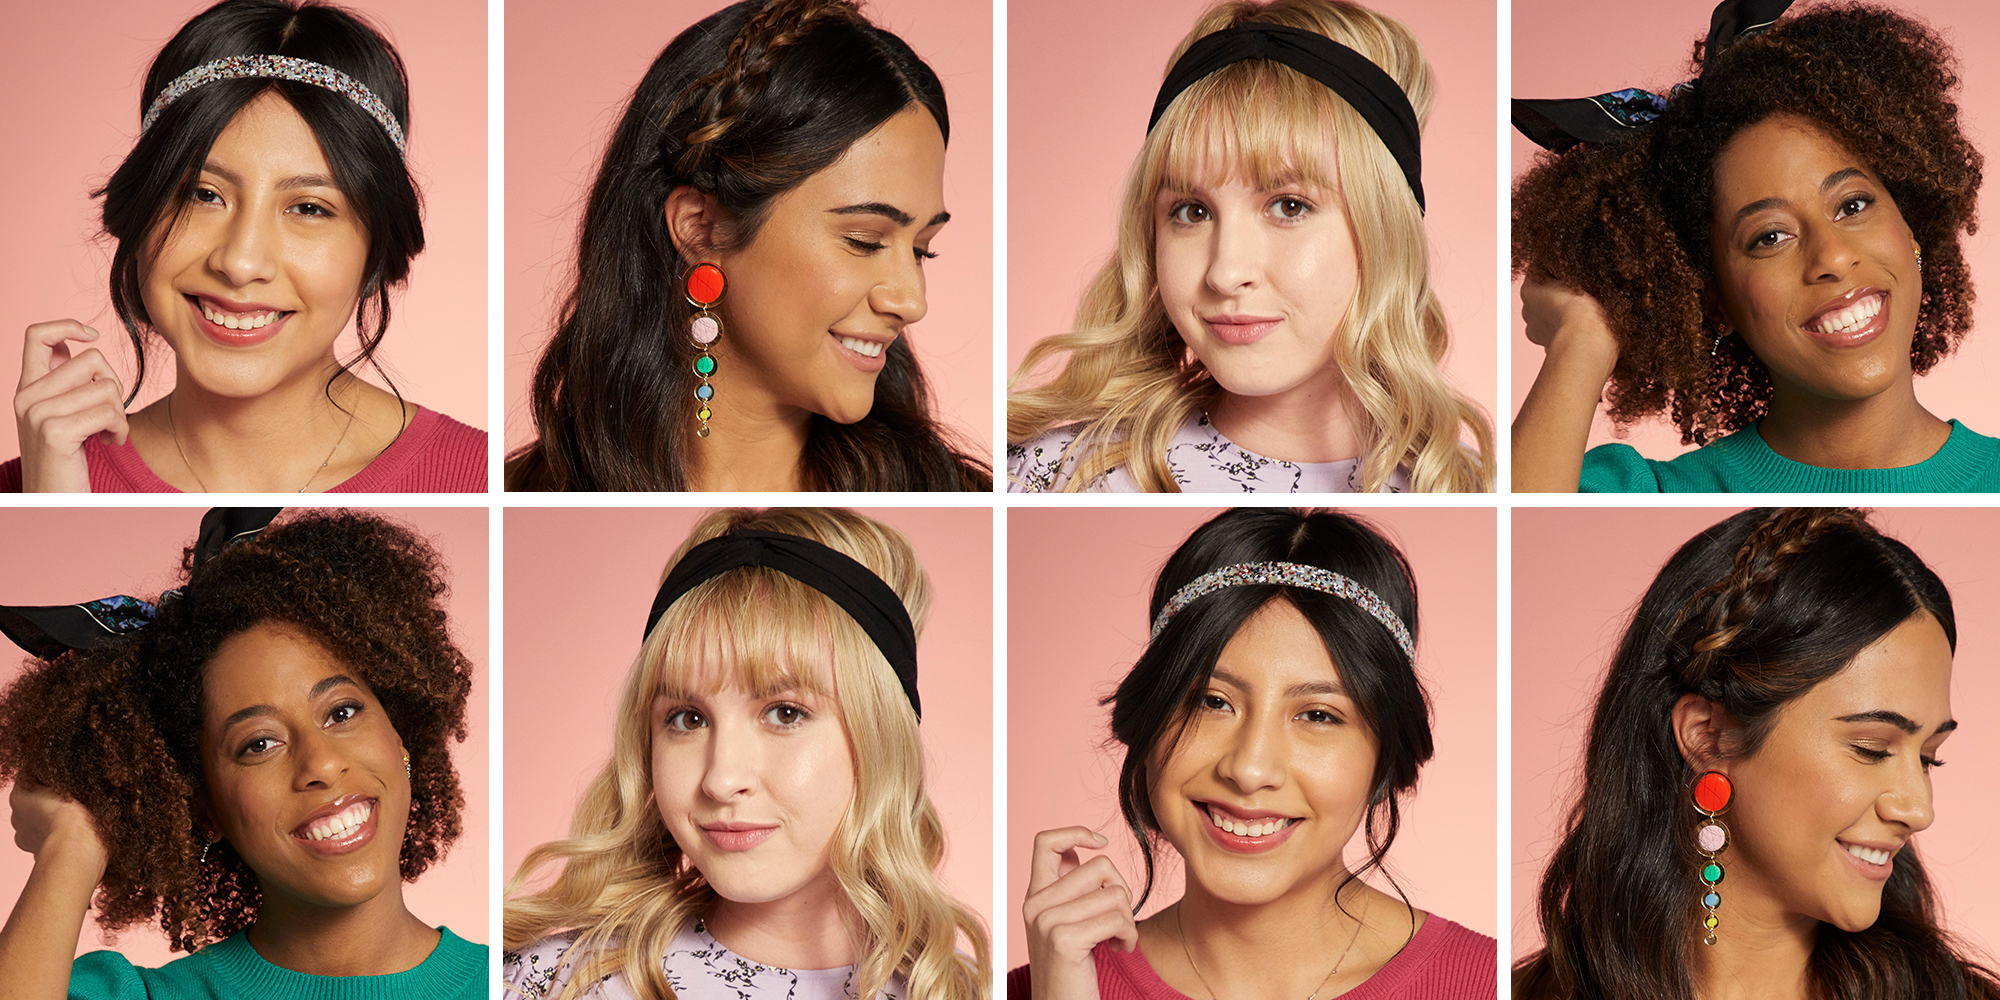 How To Wear A Headband – Cute Headband Styles For Adults Throughout Preferred Hairstyles With Fringes, End Curls And Headband (View 15 of 20)